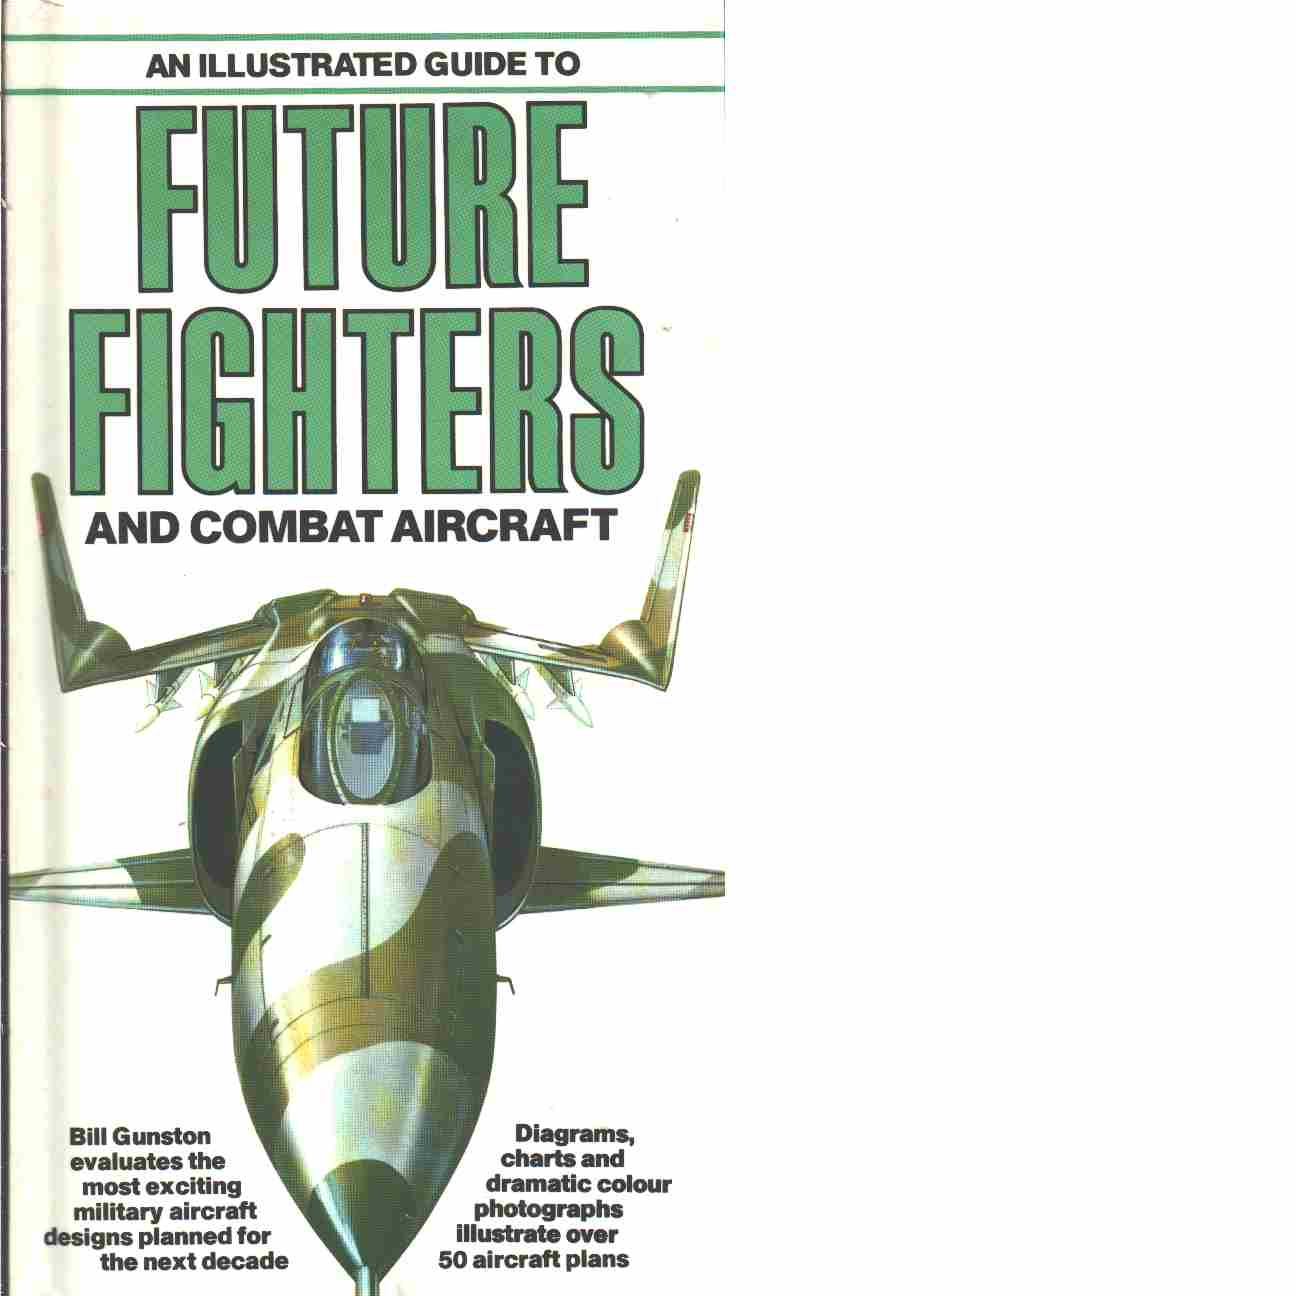 An illustrated guide to future fighters and combat aircraft  - Gunston, Bill